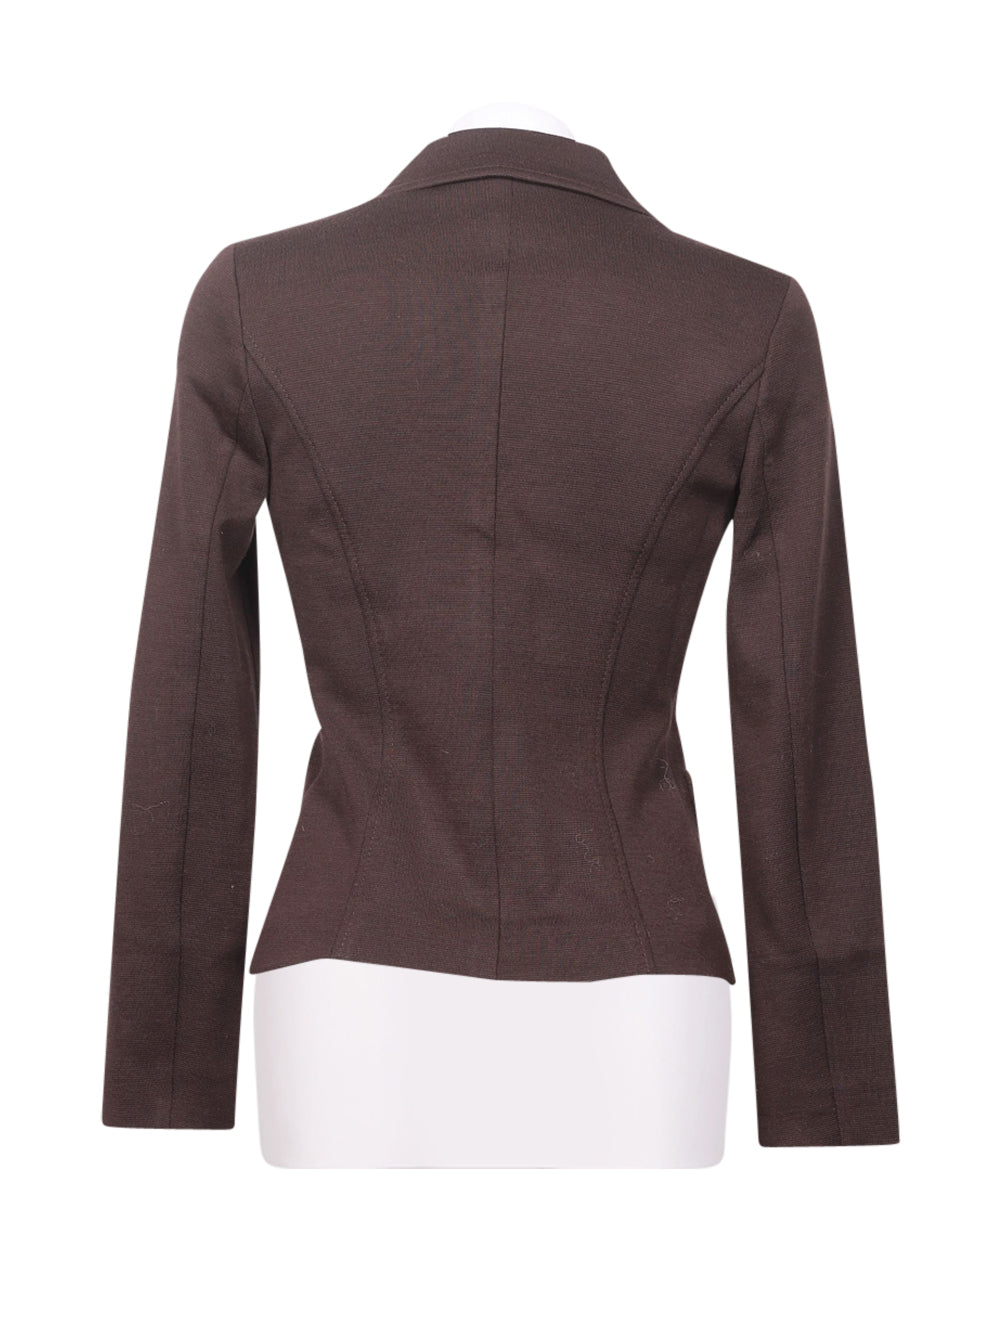 Back photo of Preloved I blues Brown Woman's blazer - size 10/M